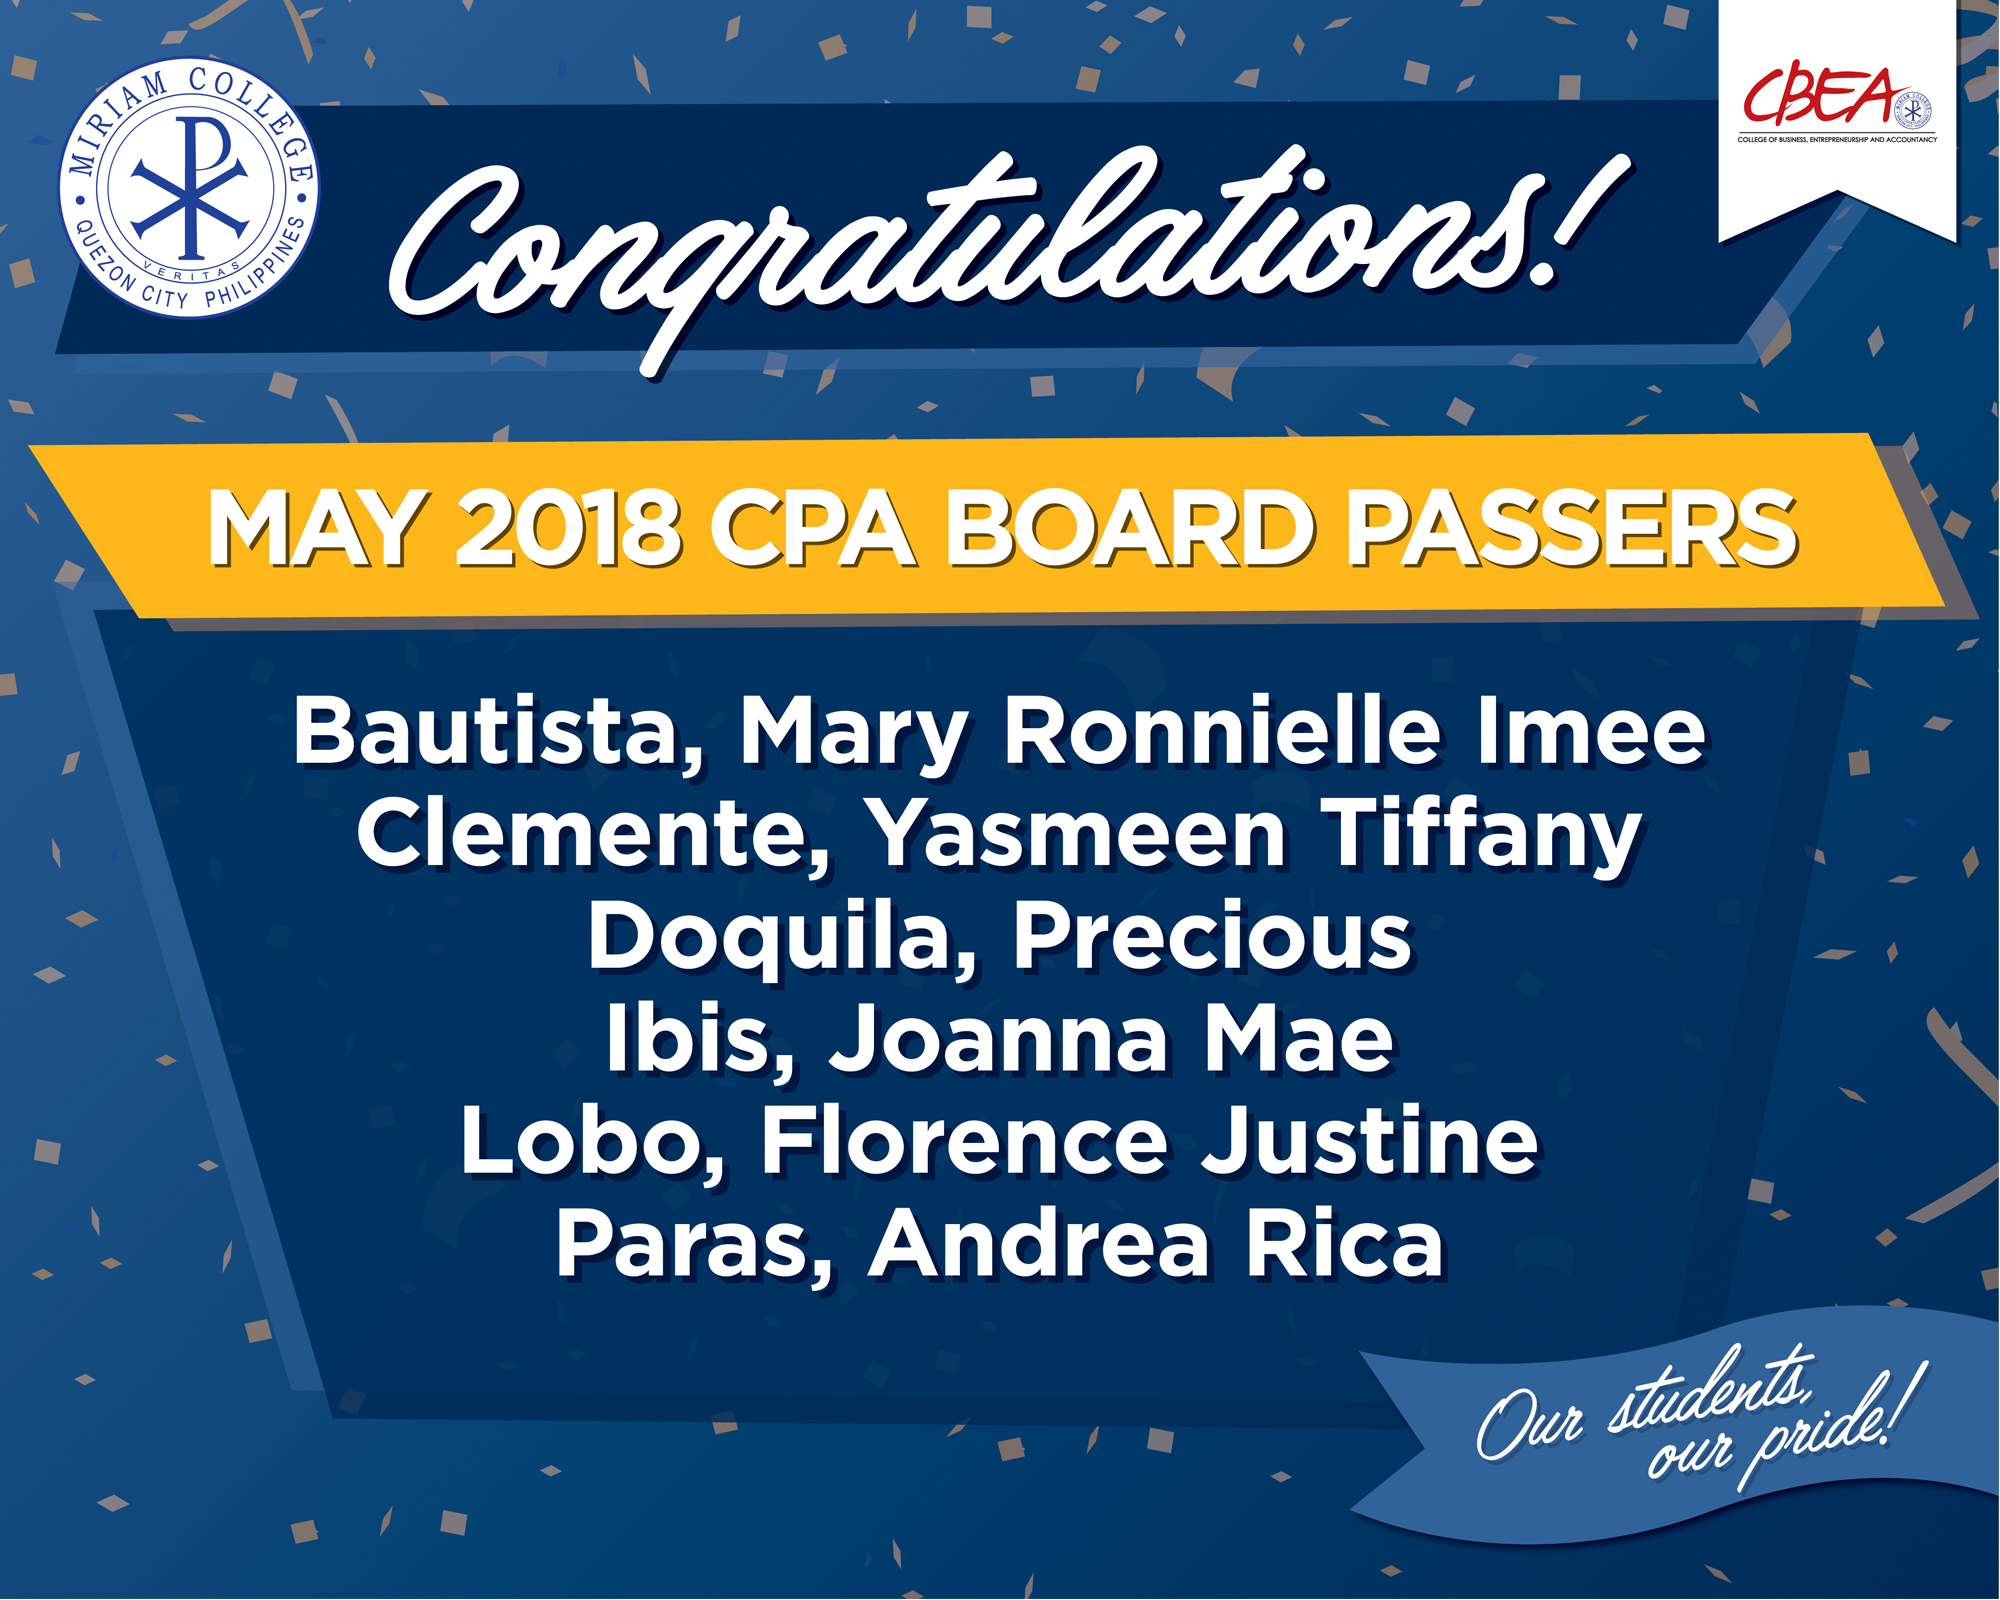 Congratulations to our new Certified Public Accountants!